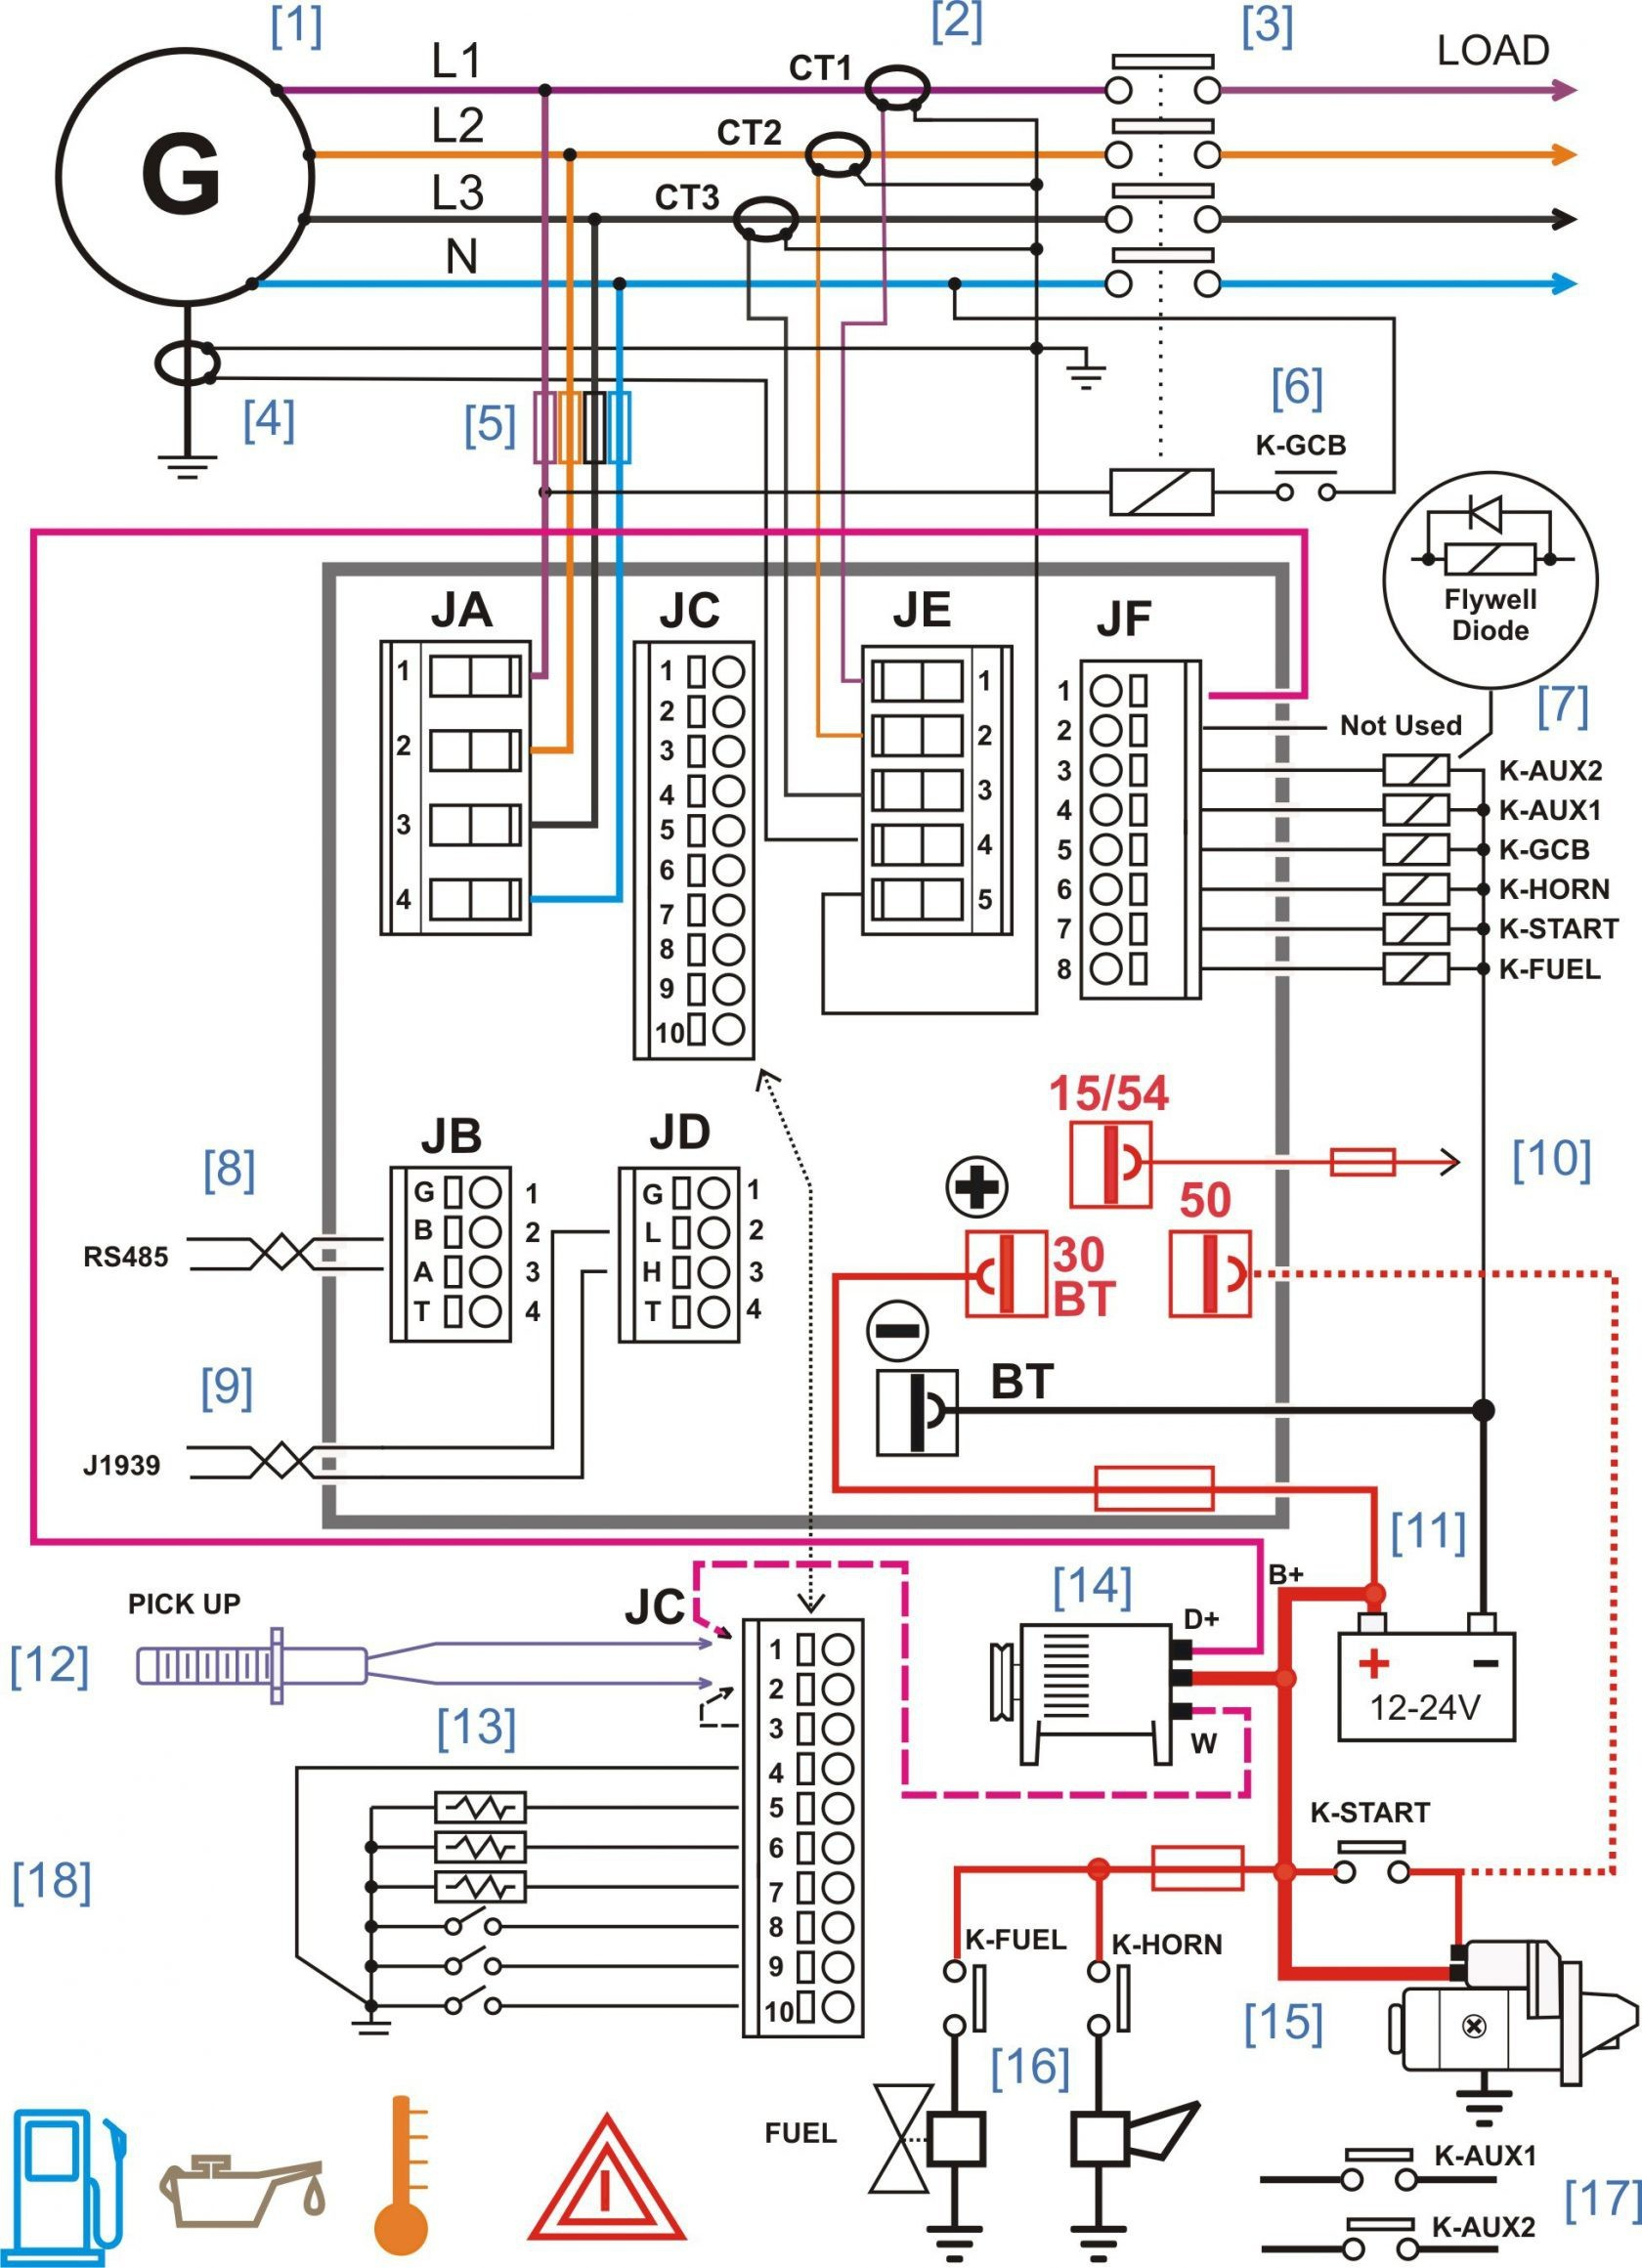 jvc kd x330bts wiring diagram Collection-jvc kd r330 car stereo wiring  diagram best fresh. DOWNLOAD. Wiring Diagram ...